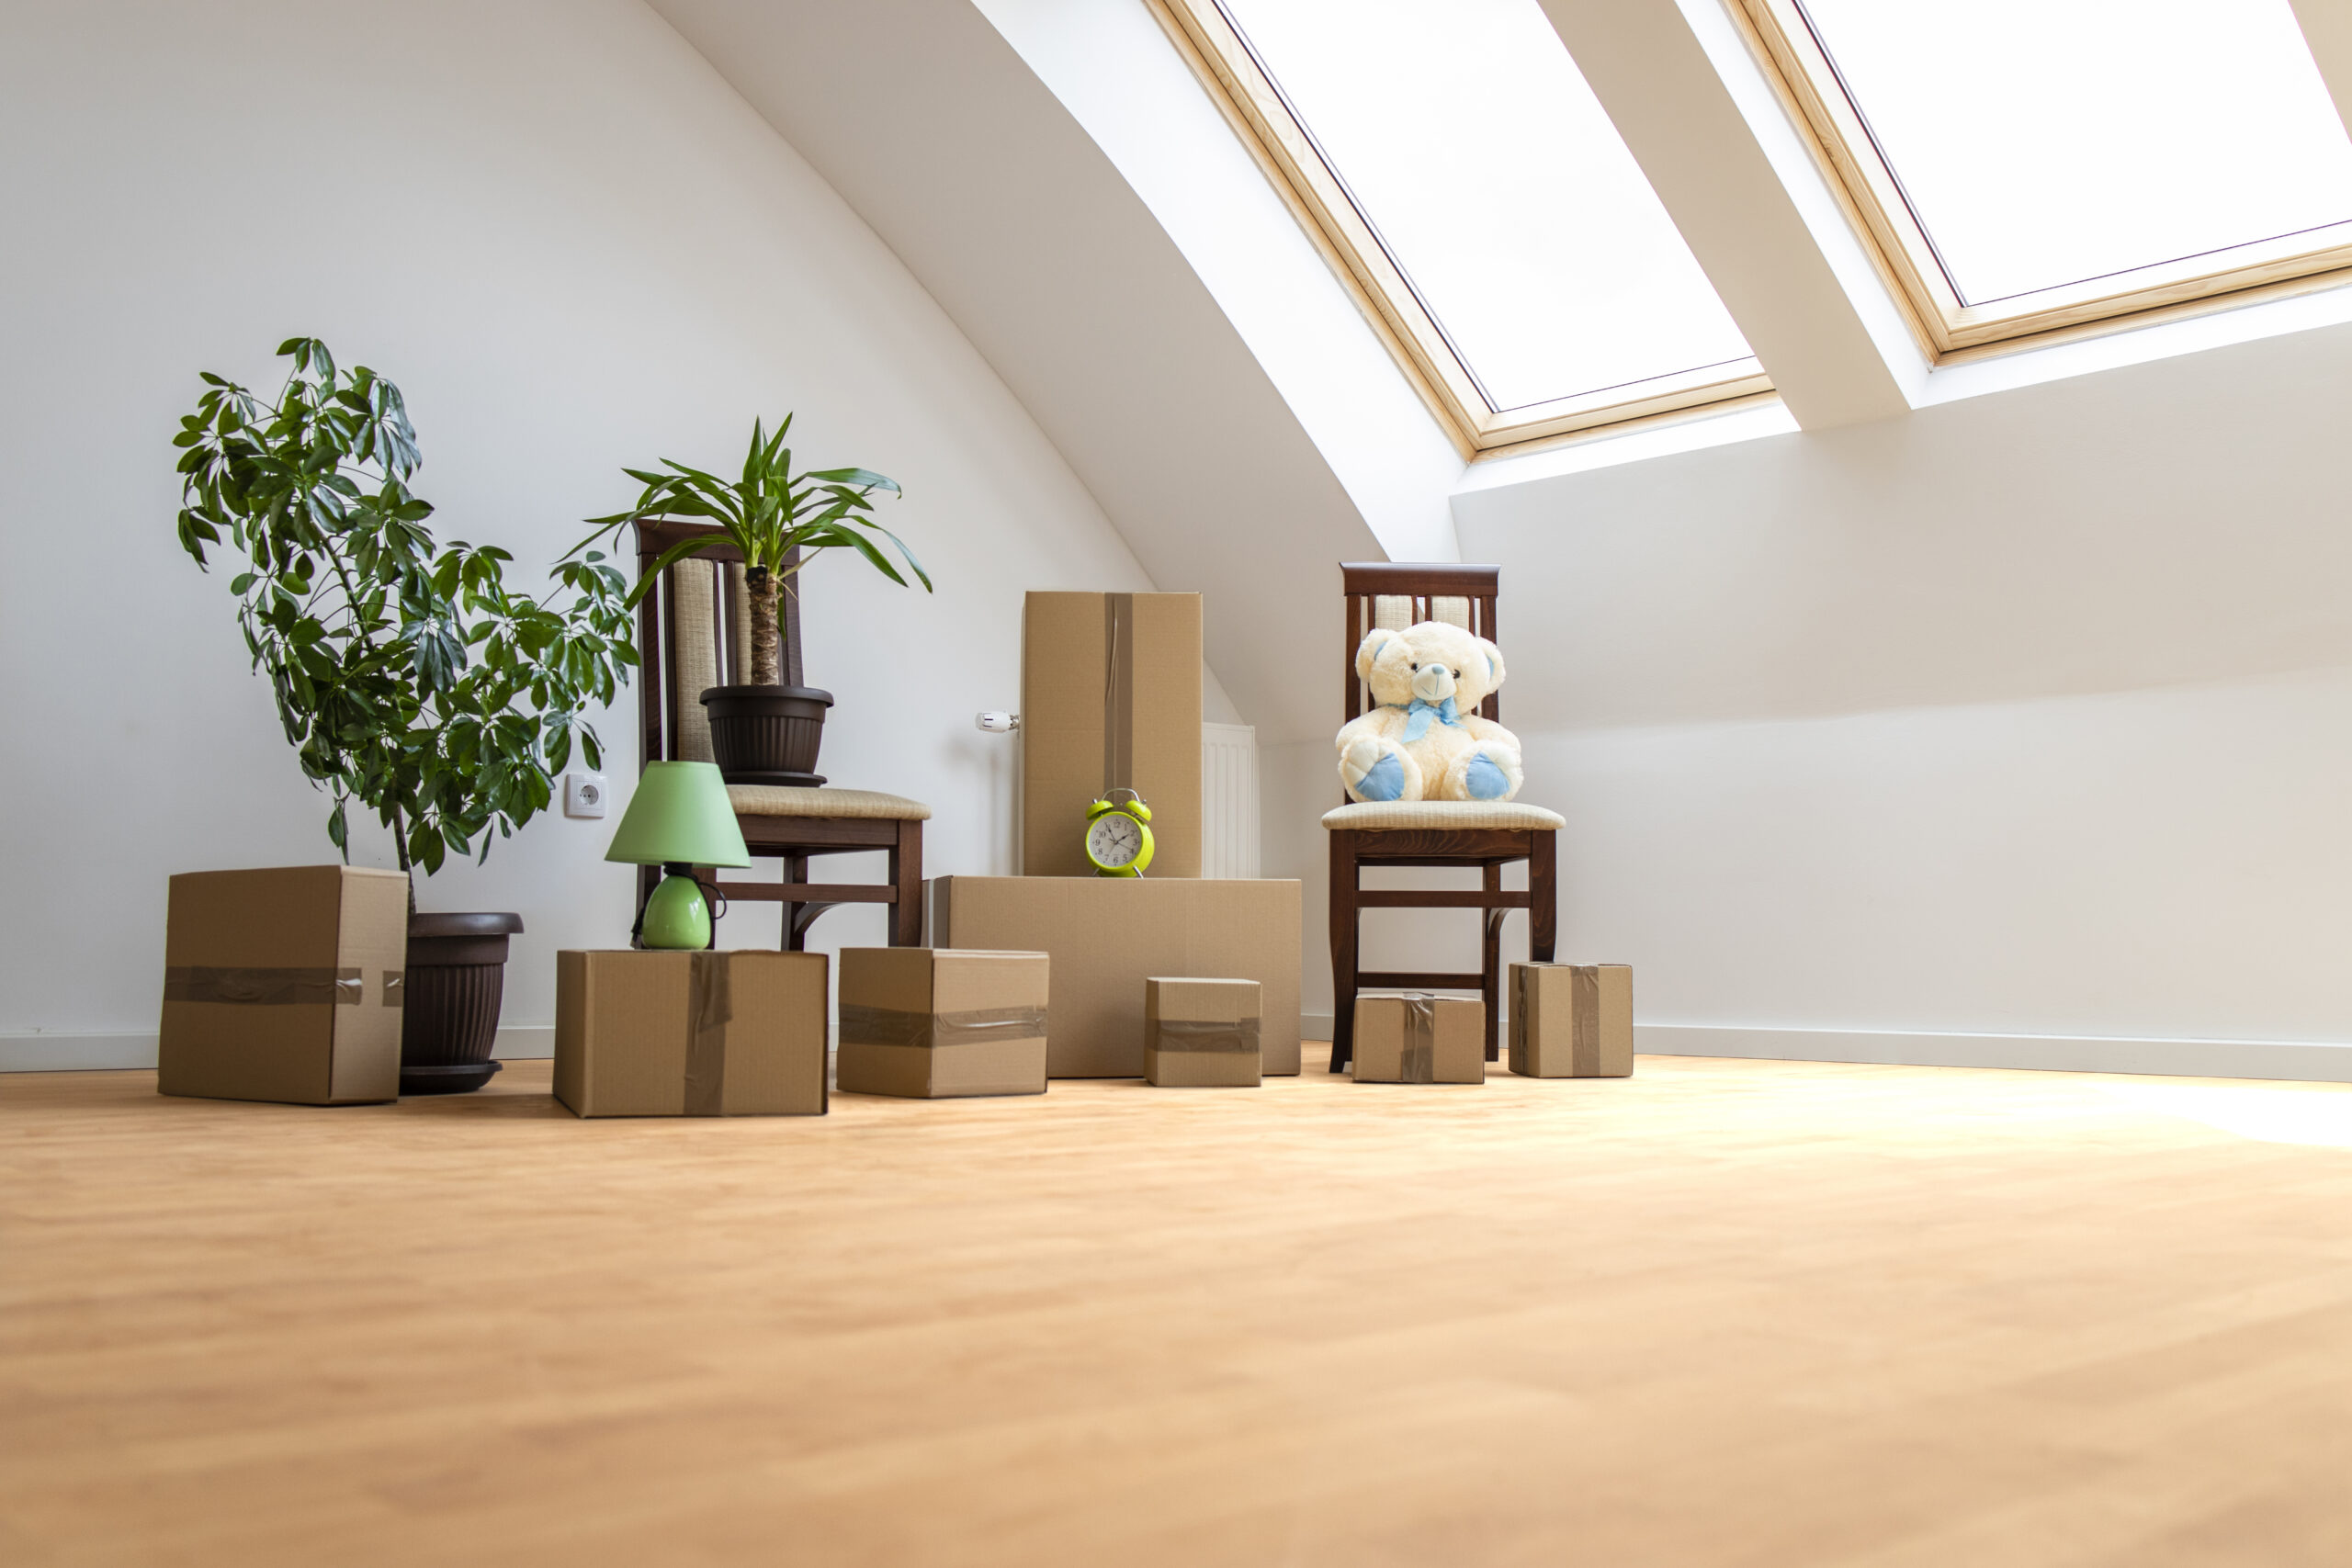 New home, boxes, moving and real estate concept - moving into the new house and cardboard boxes flowers and toys in the living room.